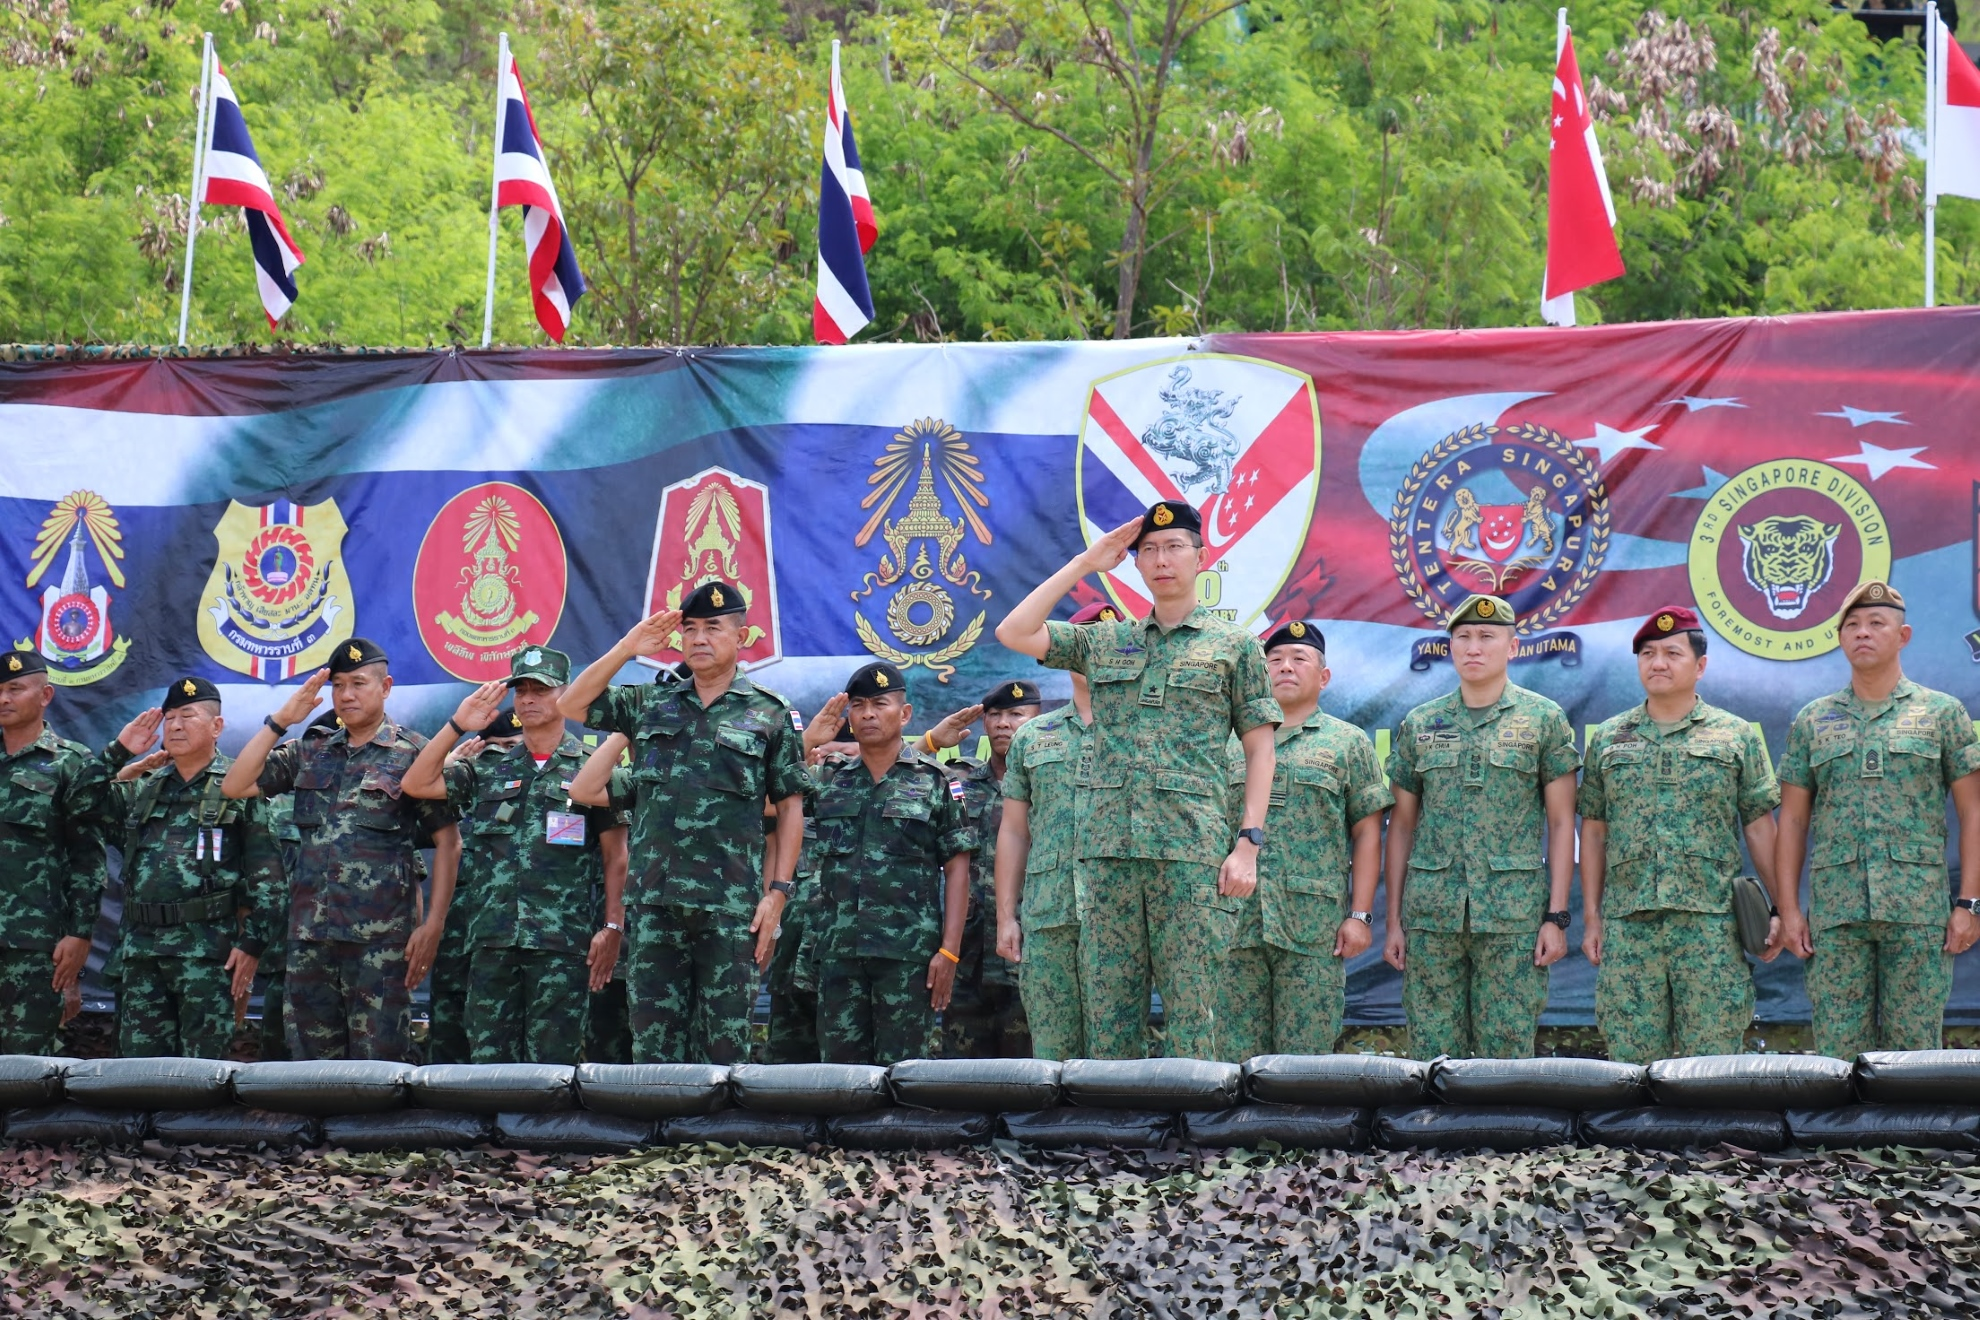 Chief of Army Brigadier-General (BG) Goh Si Hou and Commander-in-Chief of the Royal Thai Army (RTA) General (GEN) Chalermchai Sitthisad co-officiating at the closing ceremony of Exercise Kocha Singa 2018, in Thailand this afternoon.